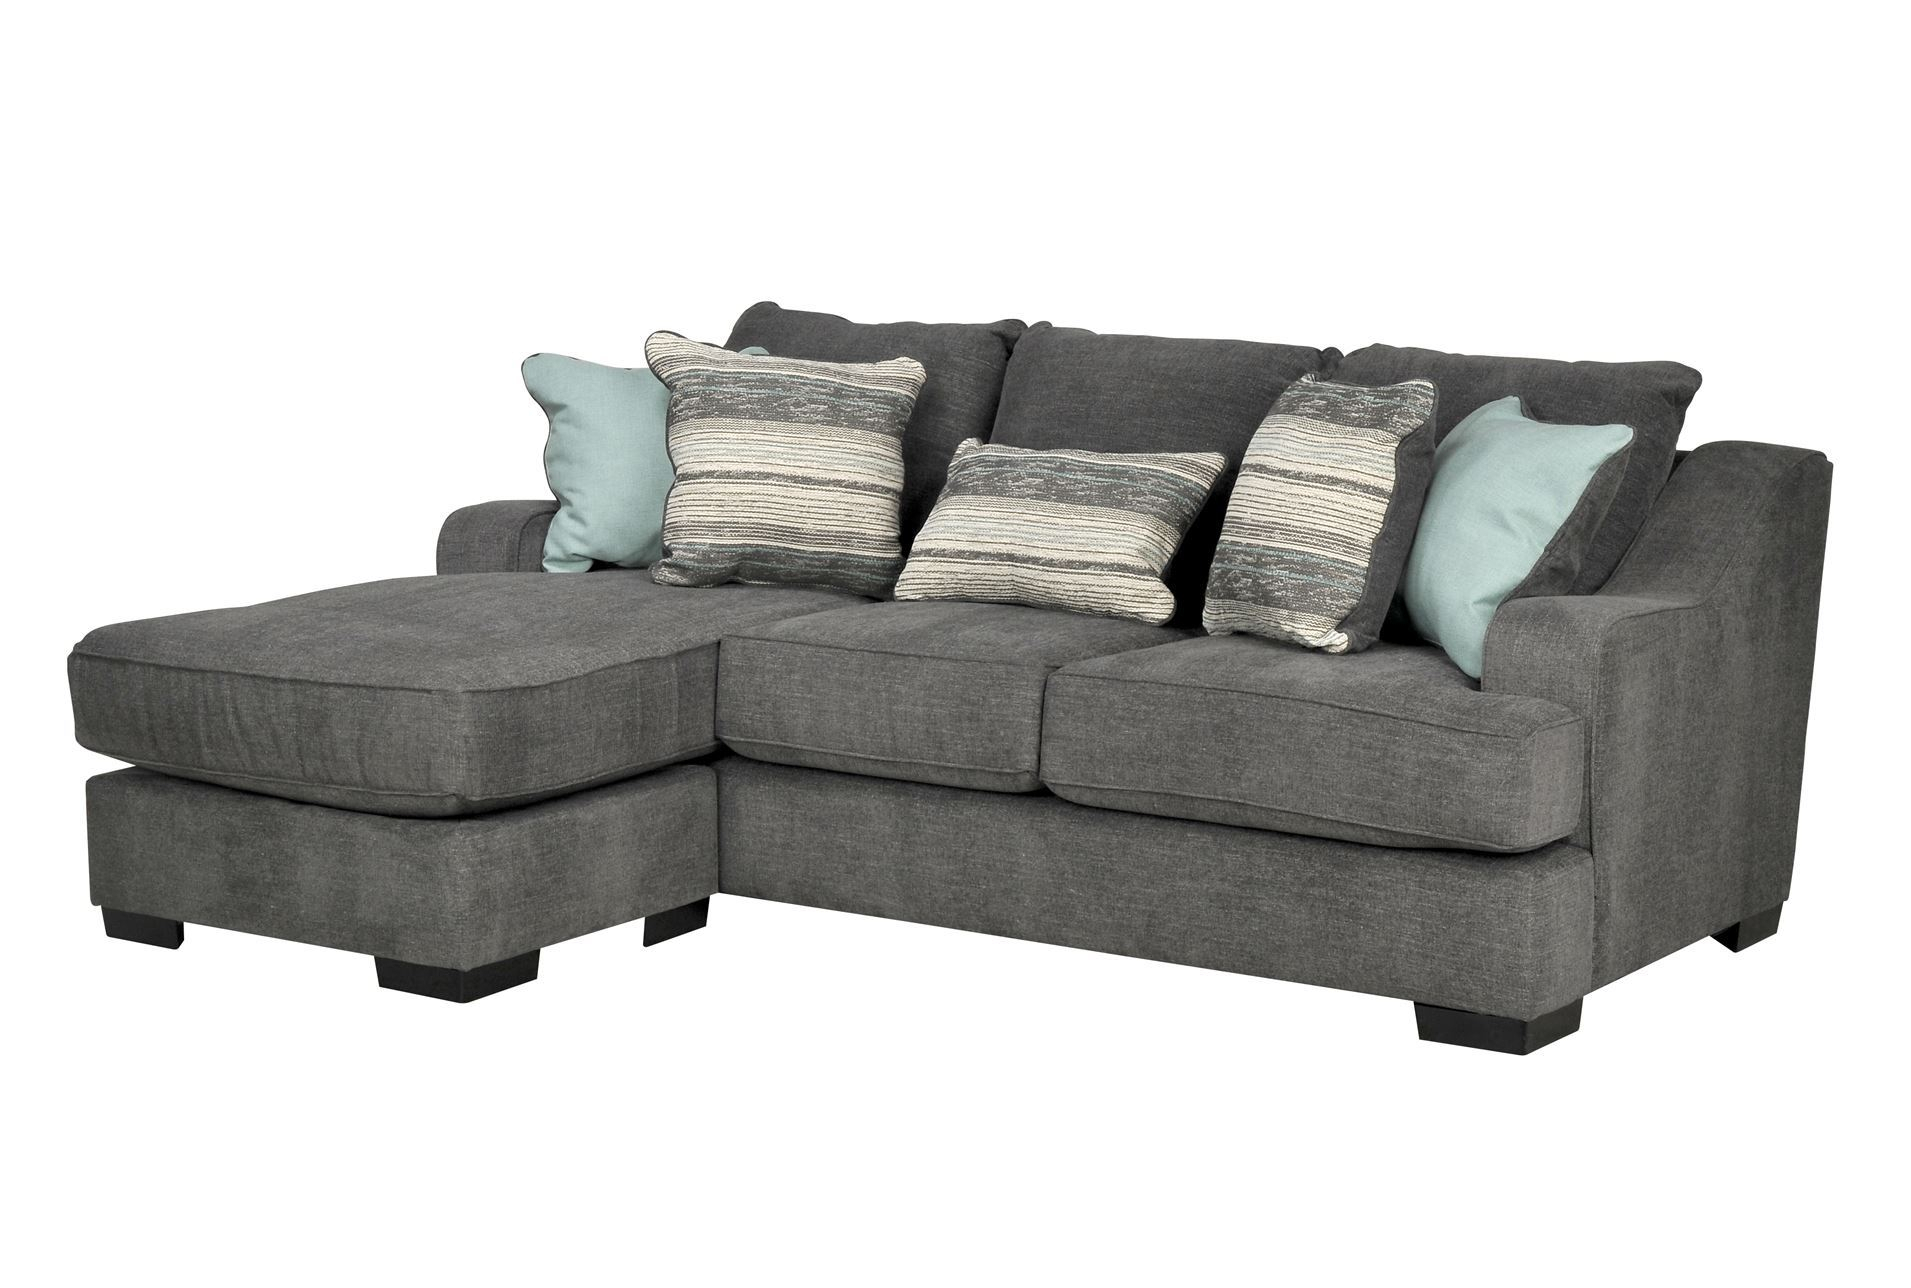 Colour Slipcovers Pillows Covers Couch Placement Glamour Schemes For Aquarius Dark Grey Sofa Chairs (Image 10 of 25)